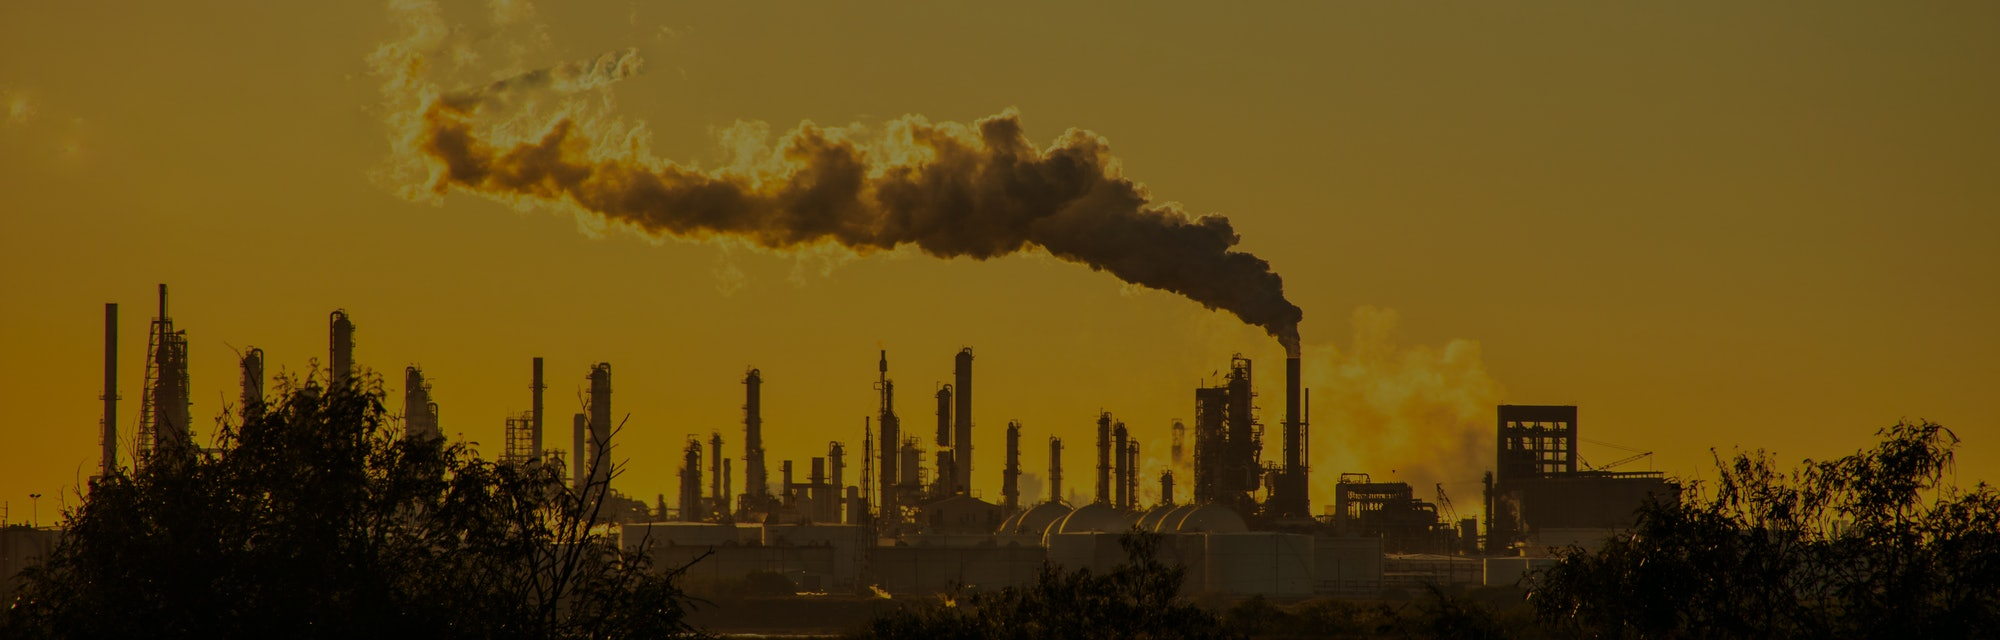 smoke stacks emmitting carbon pollution into the sky causing climate change